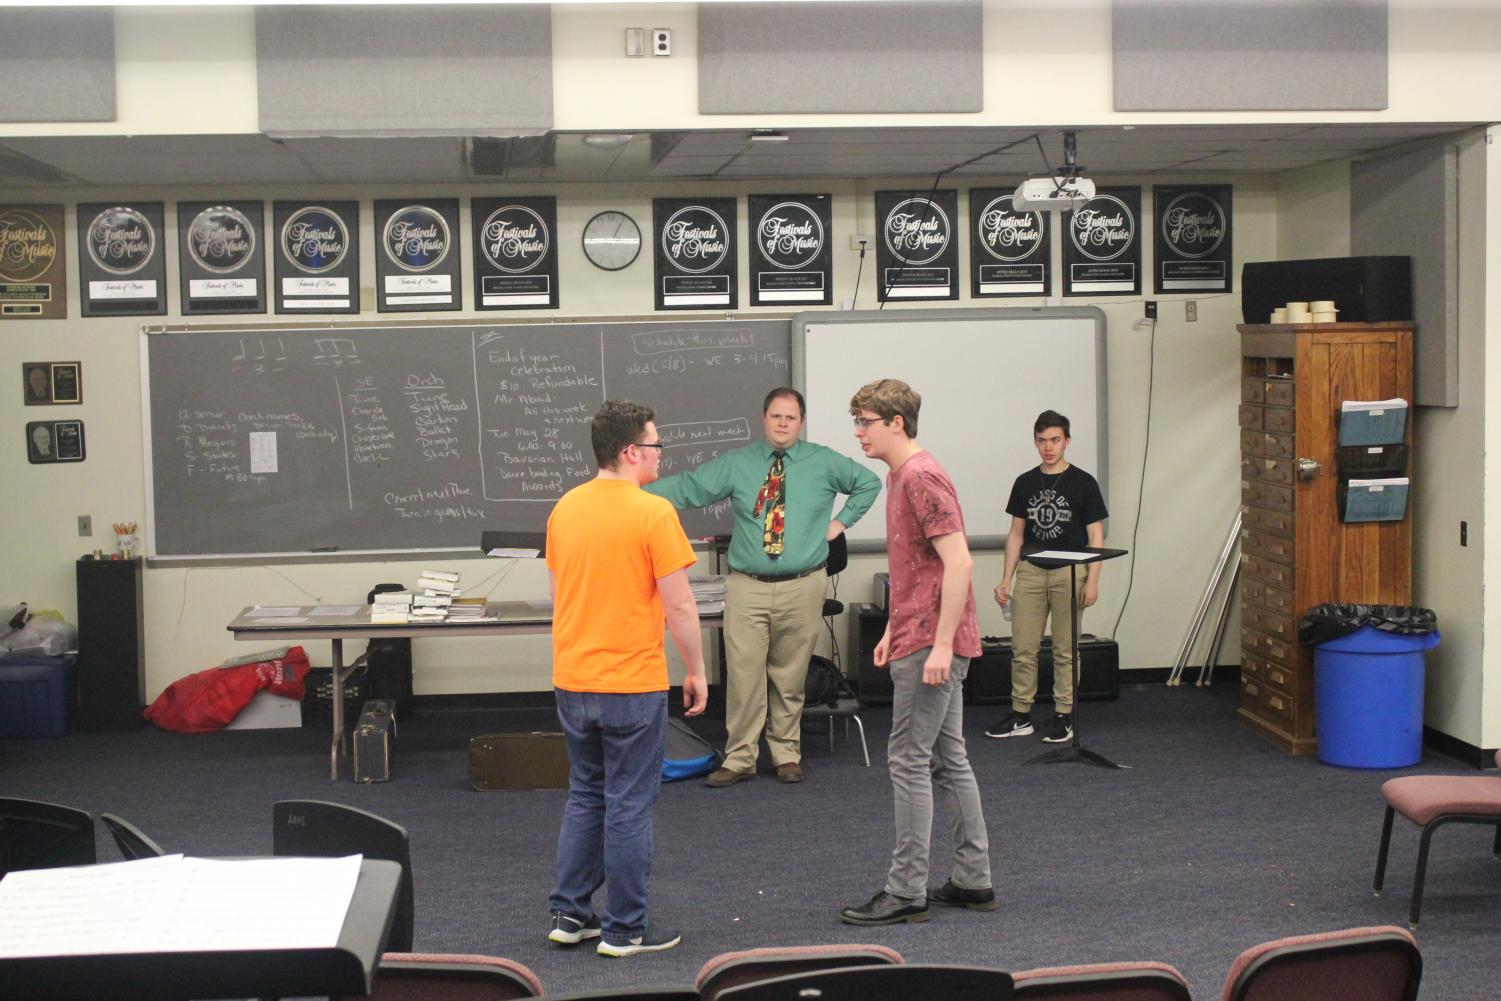 Practice makes perfect. Junior Jarrett Hann and senior Christian Howard prepare for the Isaacs by practicing one of their musical numbers from the play. Drama adviser and play director Ben Cossitor observes them as he adds notes to help with the upcoming performance.